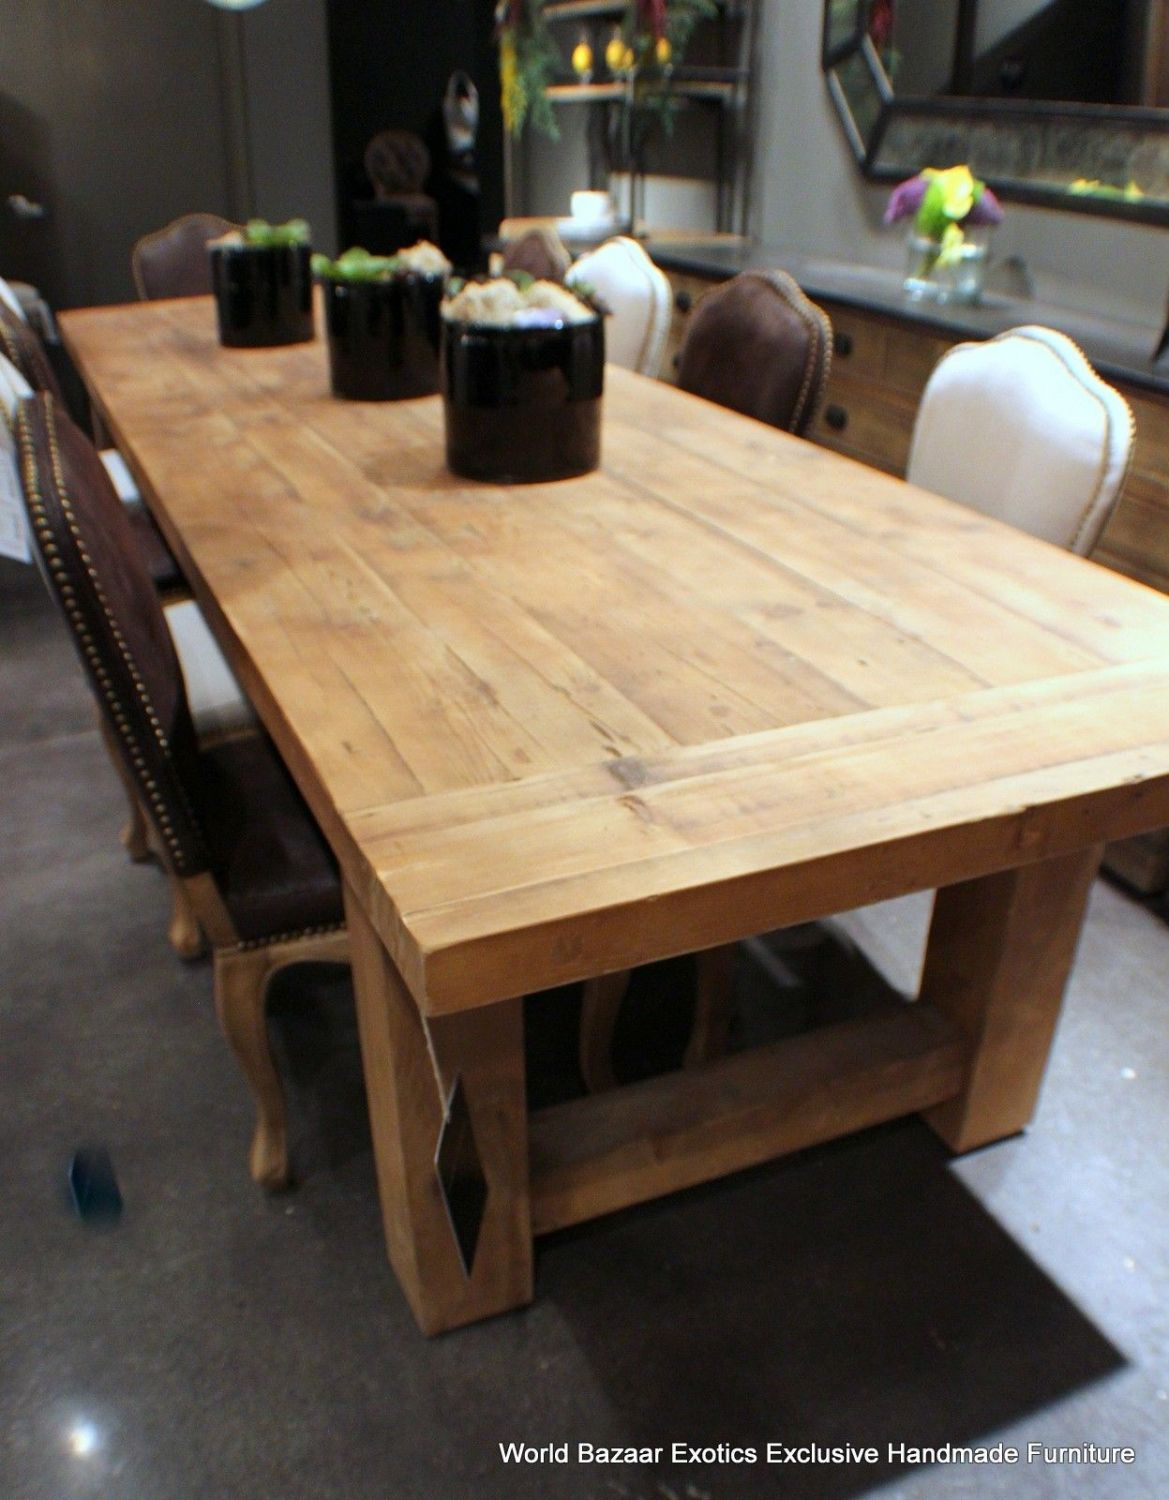 7e7ec2445c81 Large Wood Dining Room Table Amazing Ideas Long Rectangular Solid Wood  Dining Table Have Dining Chairs That Also Have Black Flowers Vase On The  Table Top ...